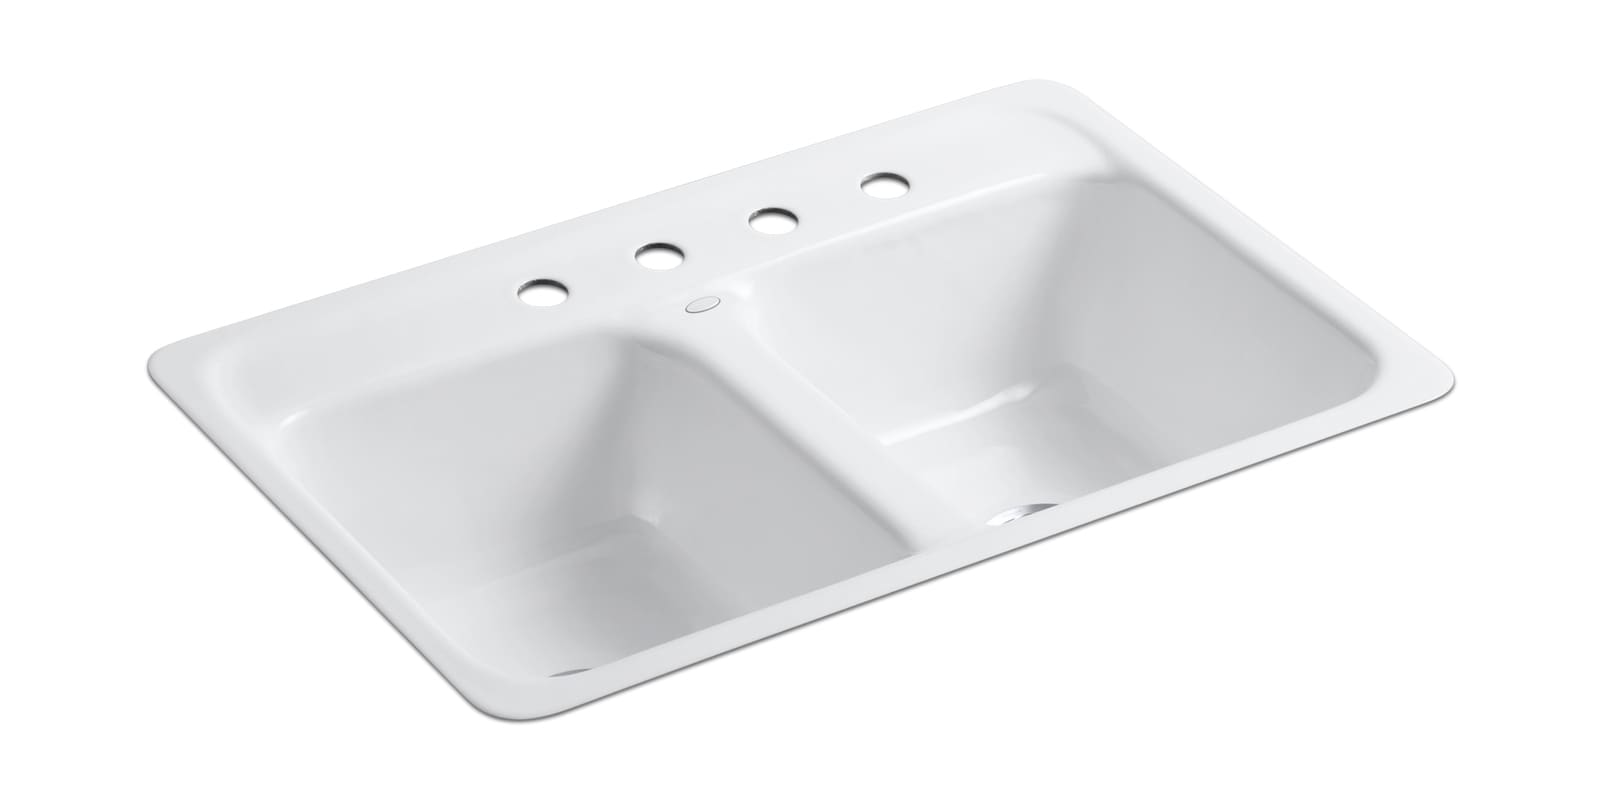 Kohler k 5950 4 0 white delafield 32 double basin tile in enameled cast iron kitchen sink - Cast iron sink weight ...